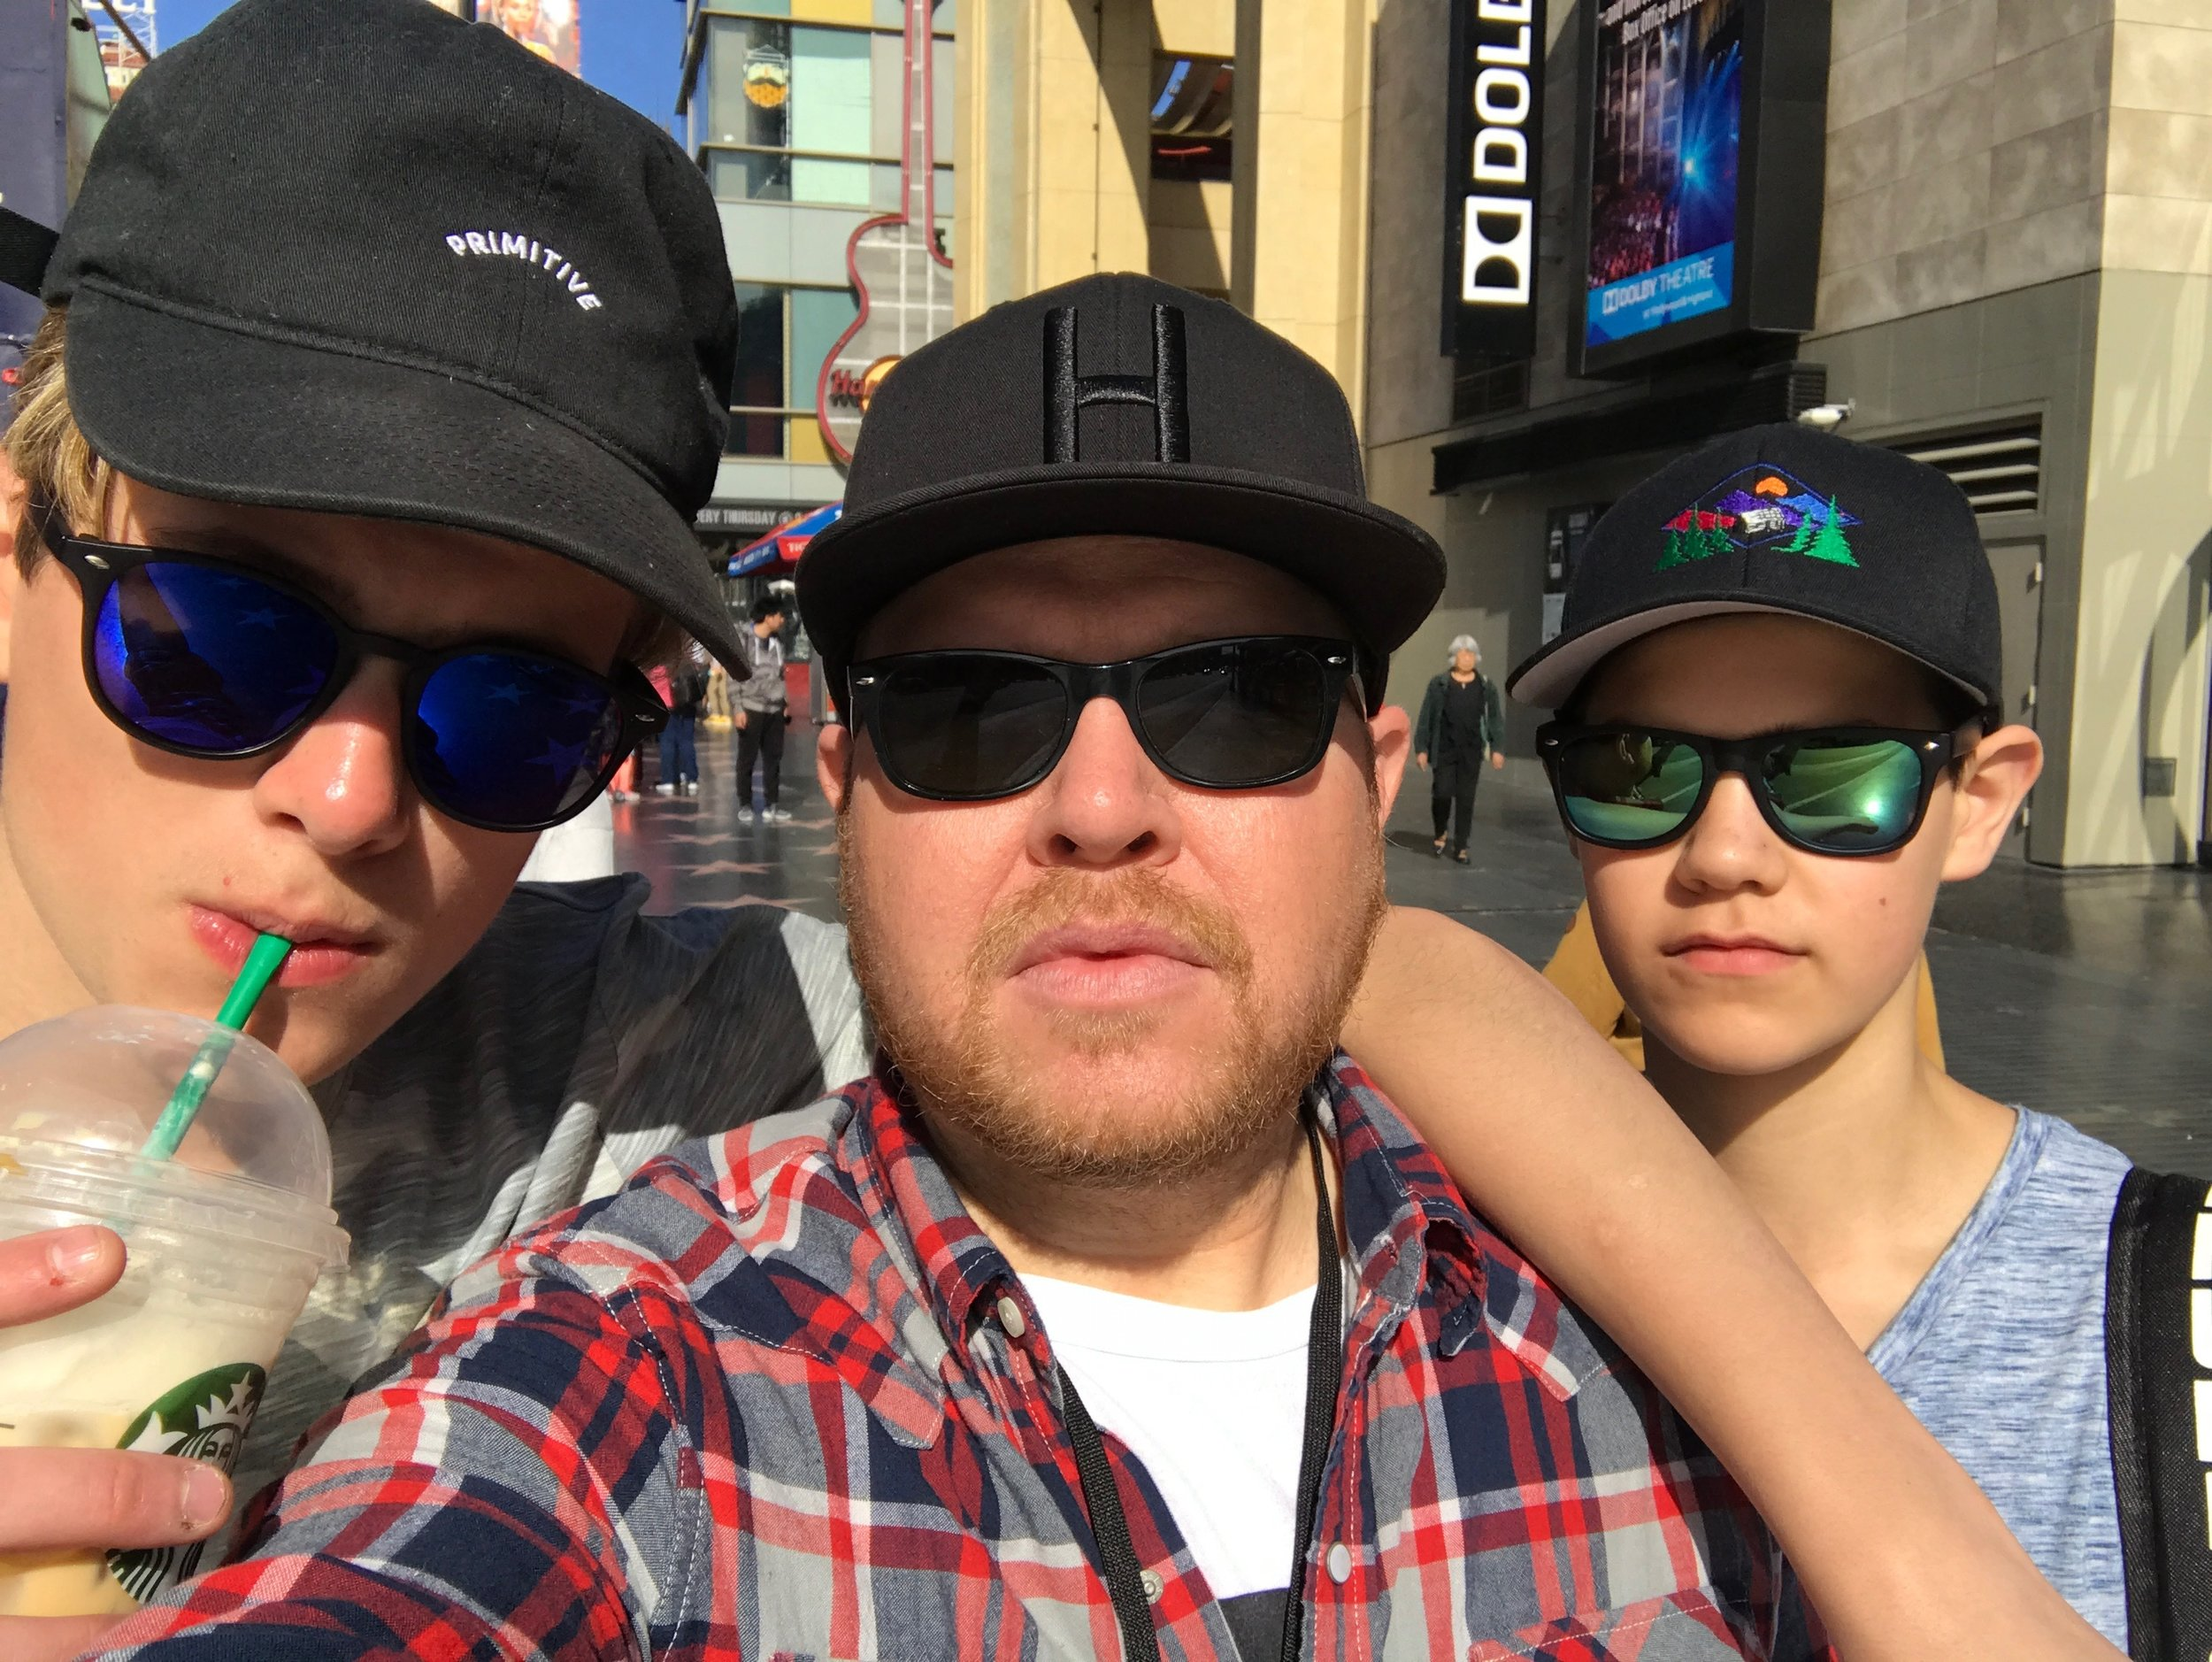 Hanging out with some of the guys from my bus on Hollywood Boulevard